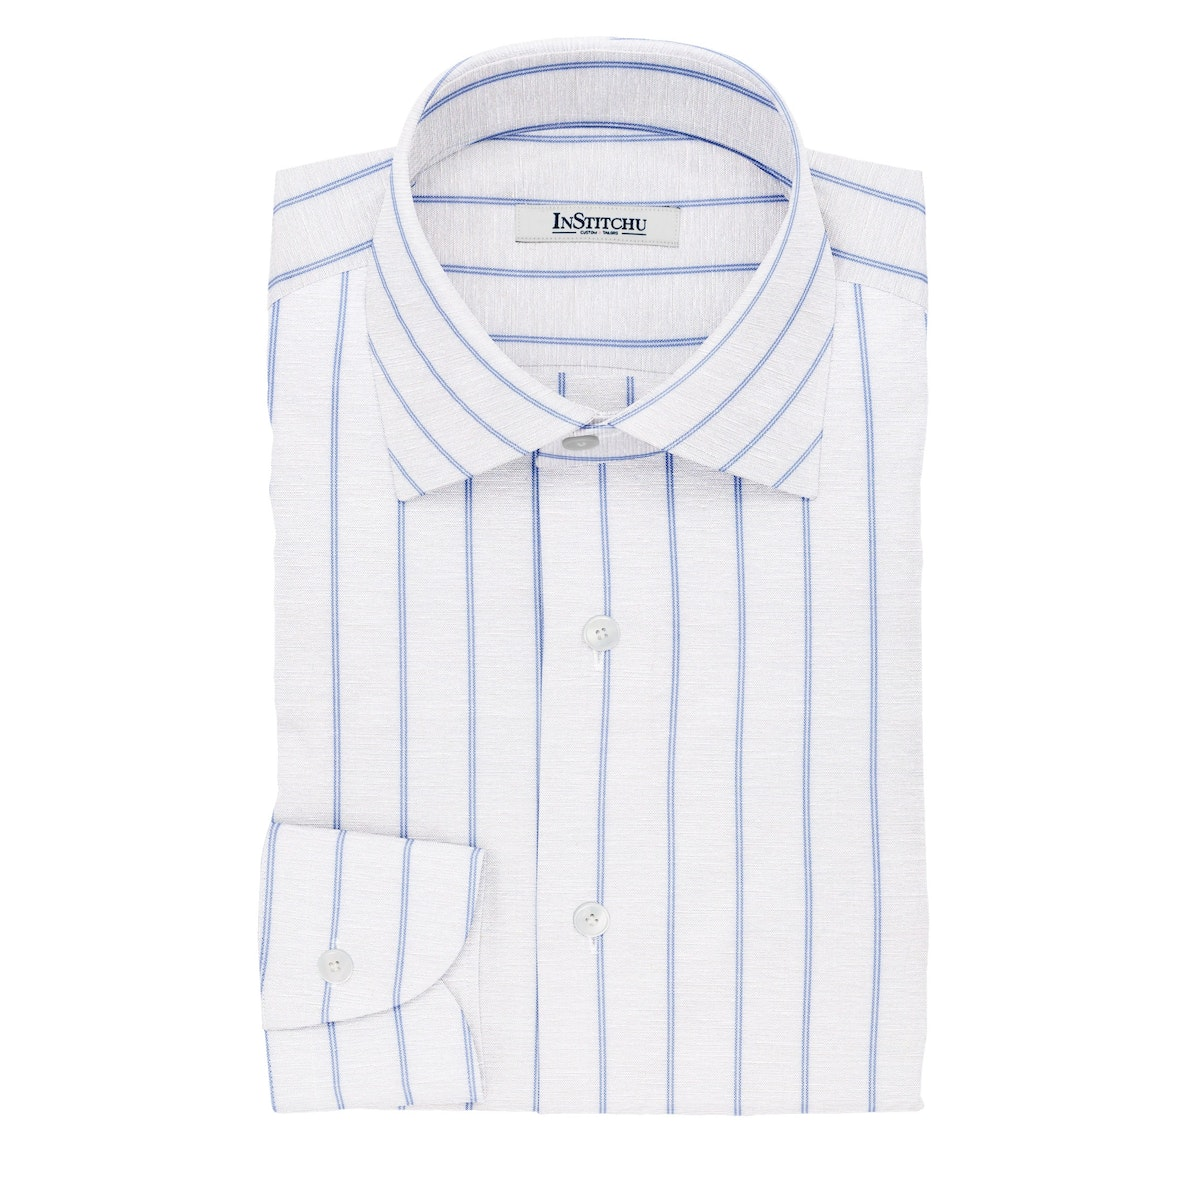 InStitchu Collection The Clancy White and Blue Striped Cotton Blend Shirt